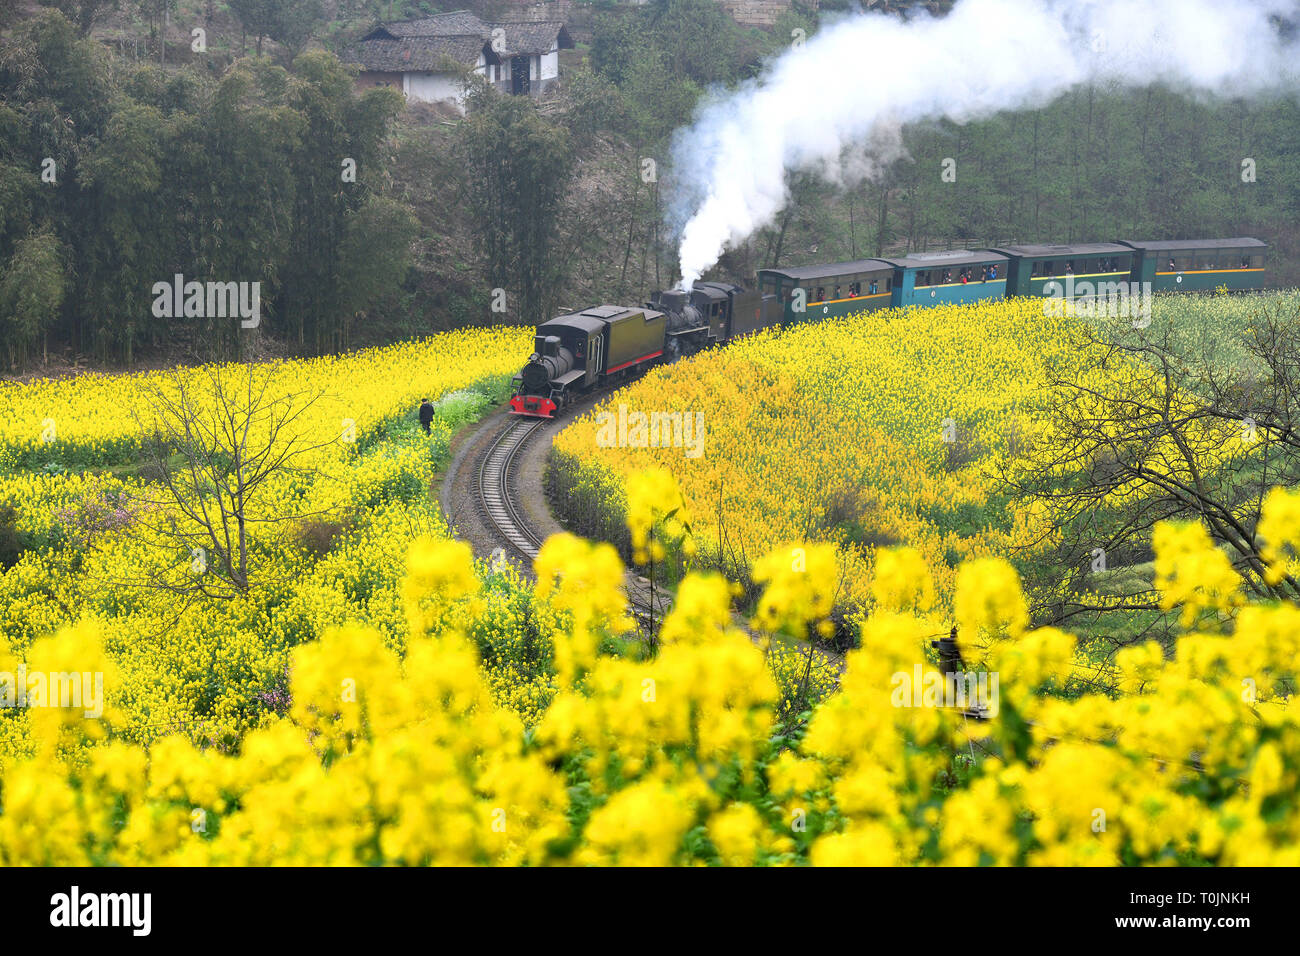 Qianwei, China's Sichuan Province. 20th Mar, 2019. A Jiayang steam train runs on a narrow gauge railway in cole flower fields in Qianwei County, southwest China's Sichuan Province, March 20, 2019. The old-fashioned steam train, running on a narrow gauge railway in Qianwei County, serves mainly in sightseeing, but as increasing number of tourists visit the county in recent years, the train itself has become an attraction providing a journey of reminiscence. Credit: Chen Tianhu/Xinhua/Alamy Live News - Stock Image